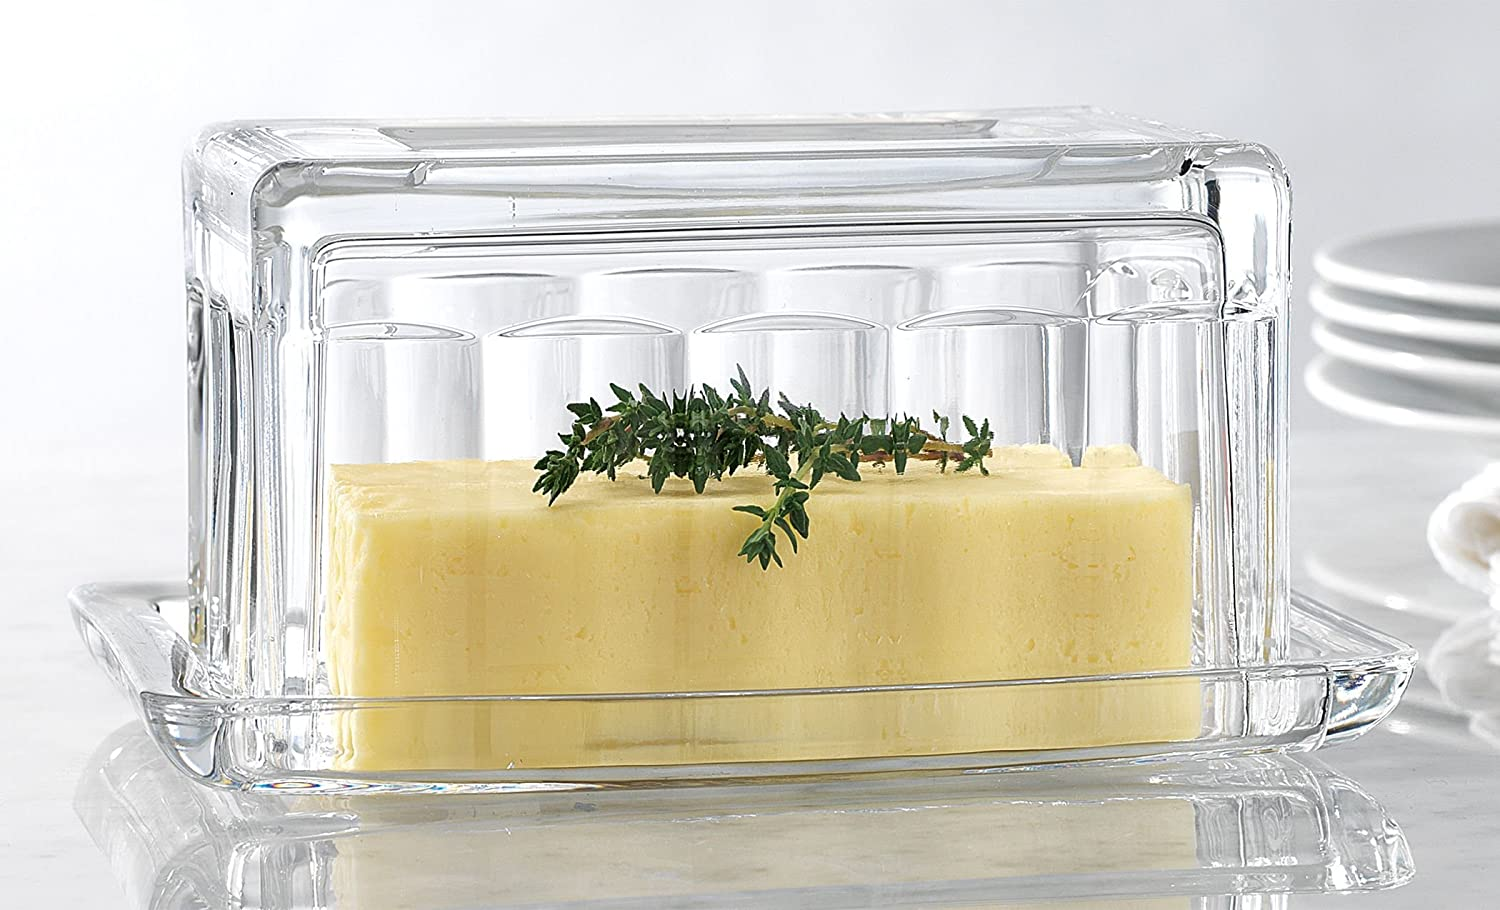 Durable clear glass butter dish -beautiful covered butter keeper serveware dish